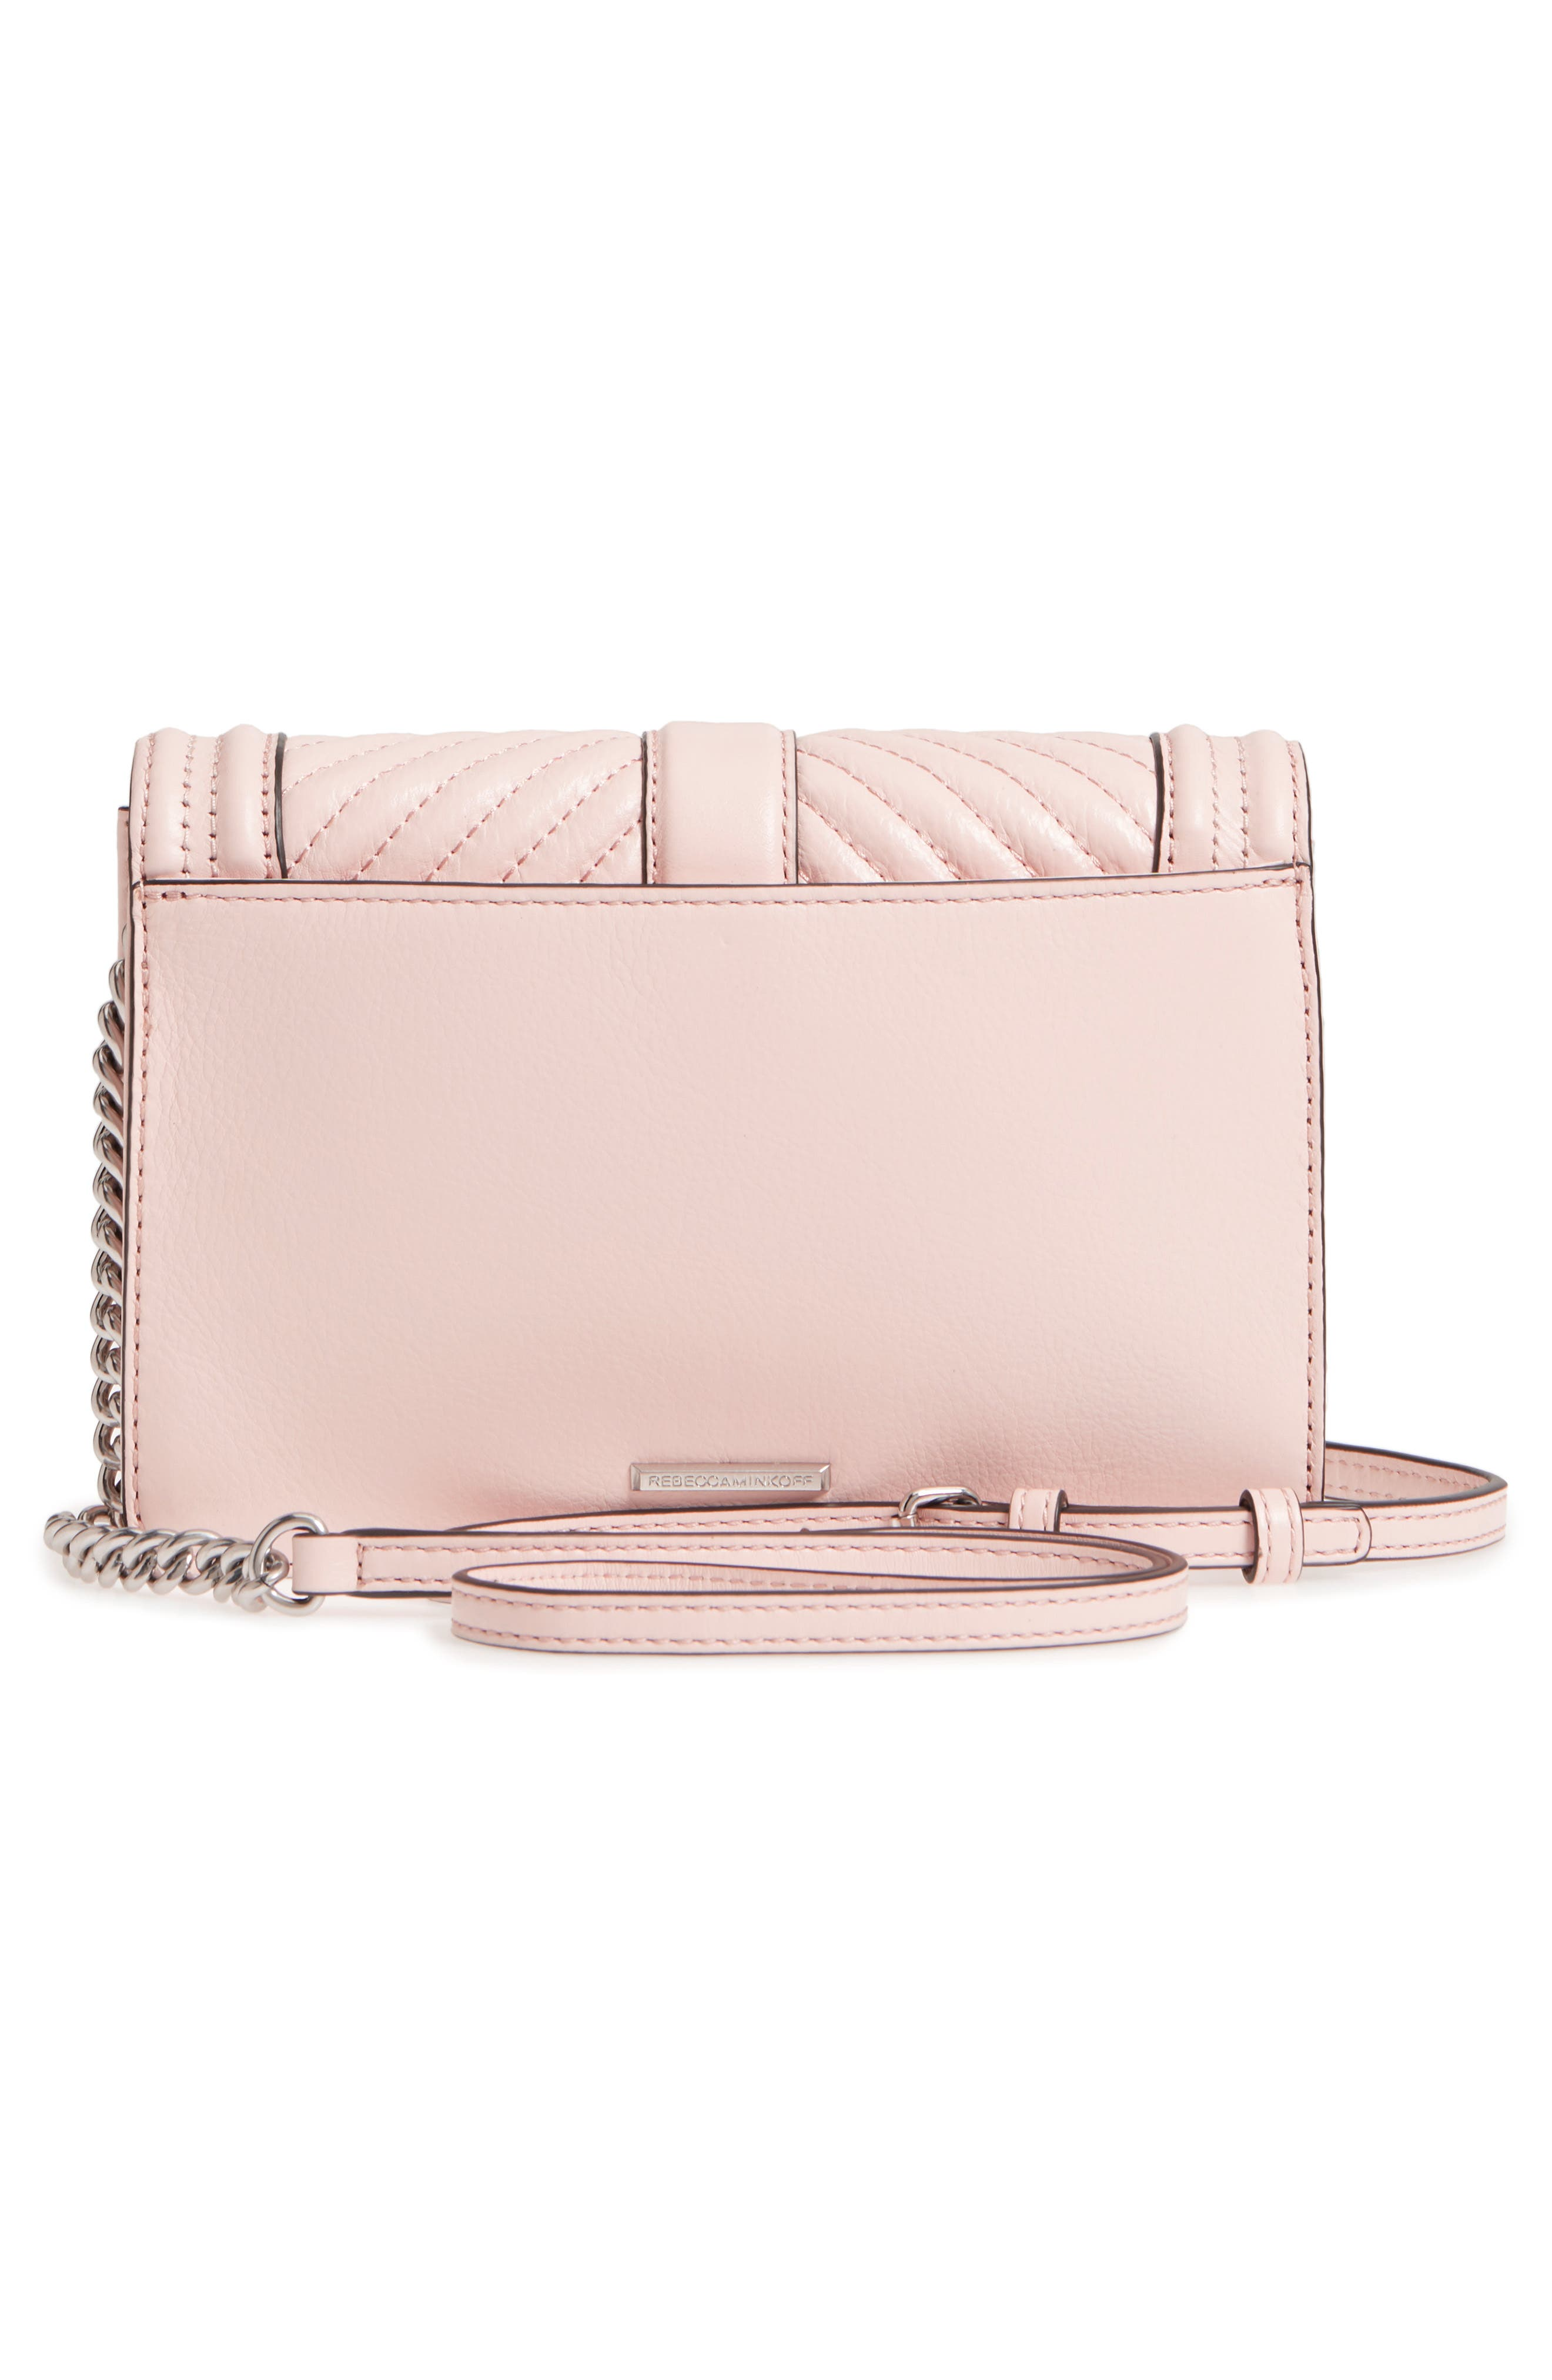 Small Love Leather Crossbody Bag,                             Alternate thumbnail 3, color,                             Peony